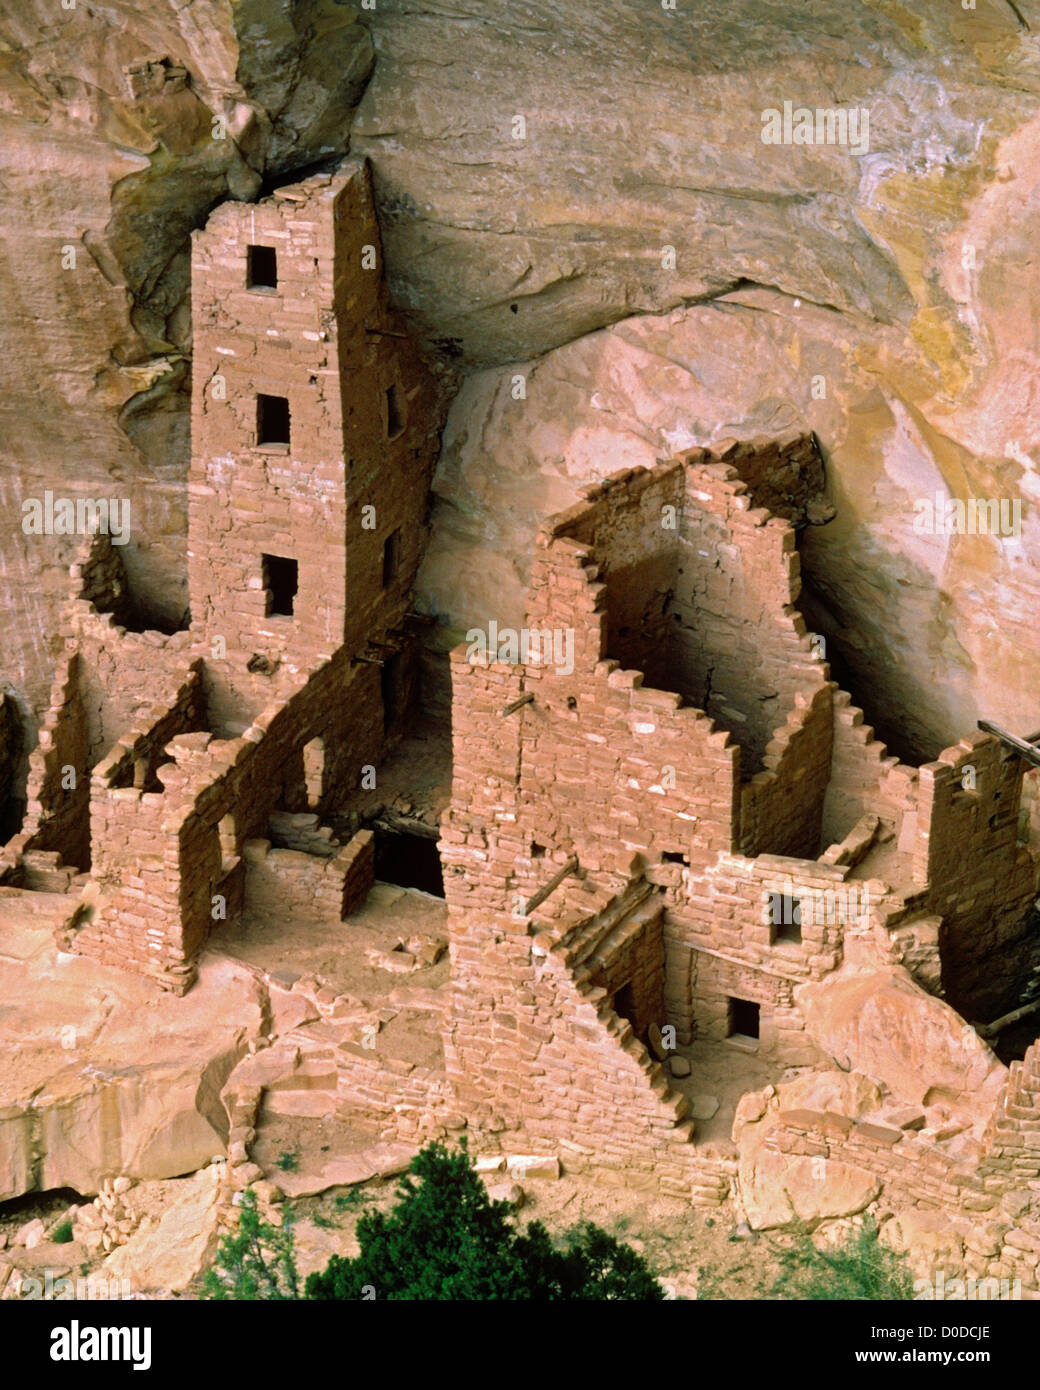 Ancient Anasazi Ruins Amid the Cliffs of Mesa Verde - Stock Image